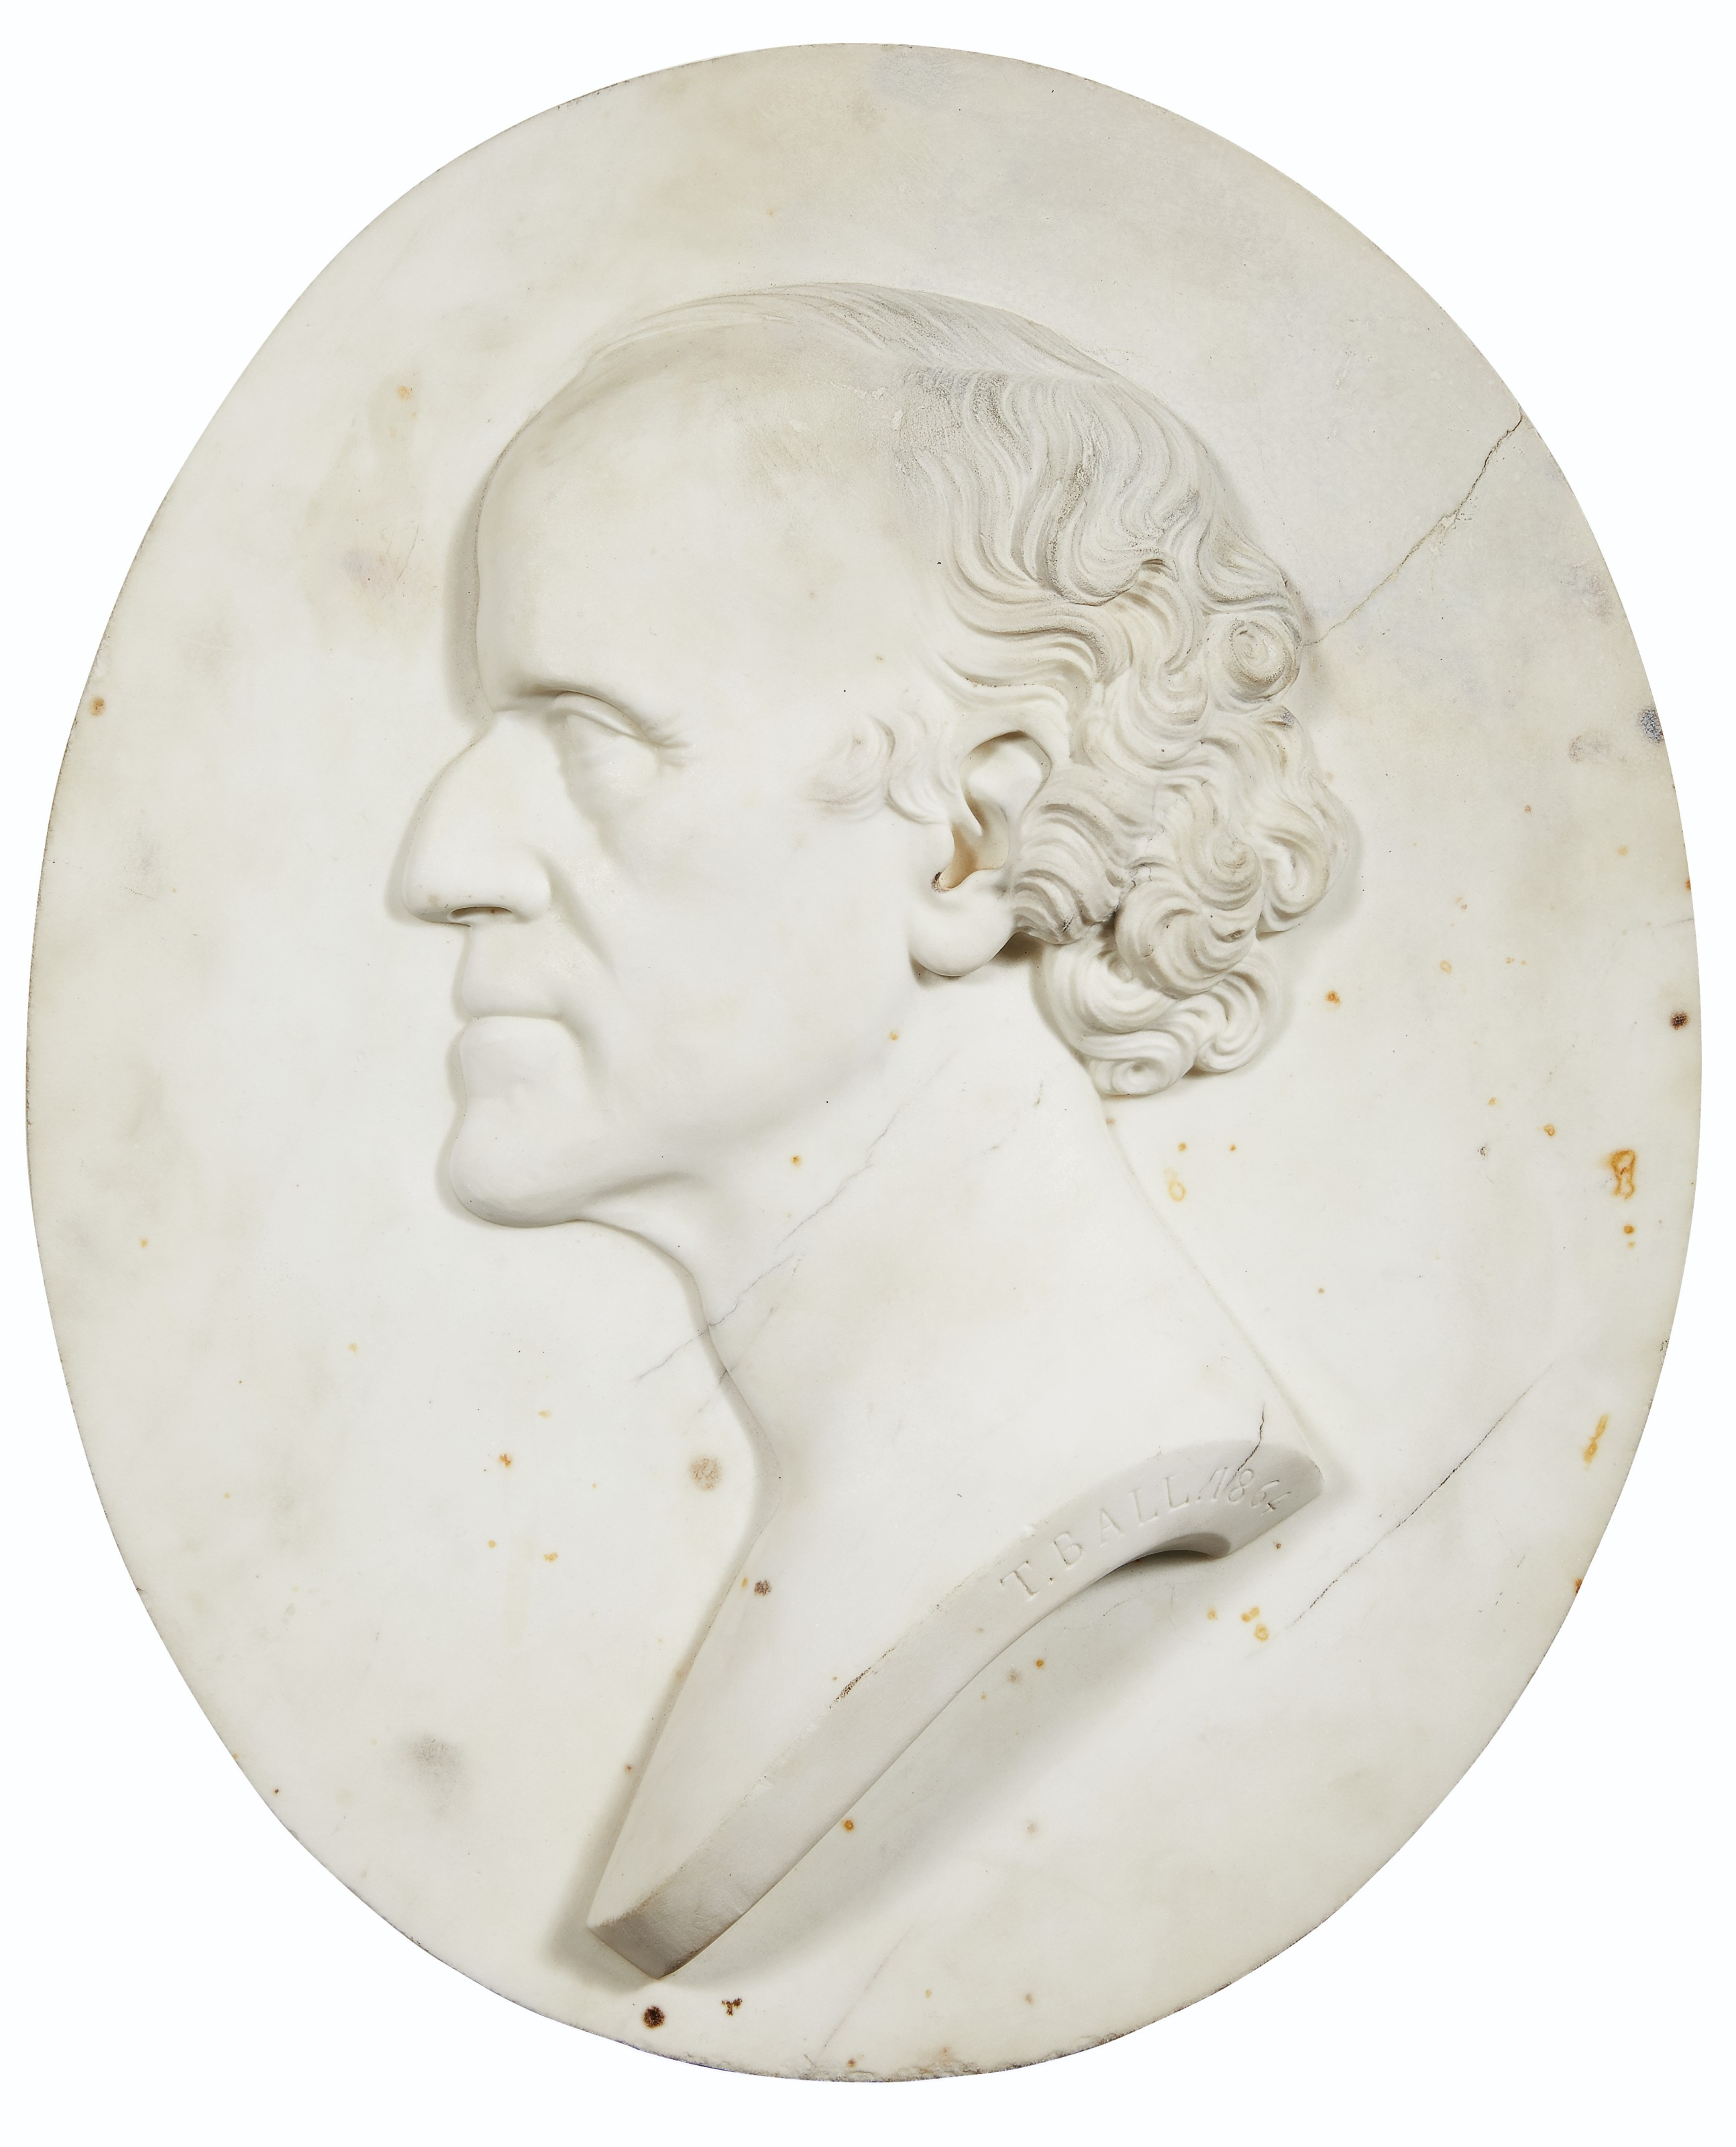 A WHITE MARBLE OVAL RELIEF PORTRAIT OF A GENTLEMAN